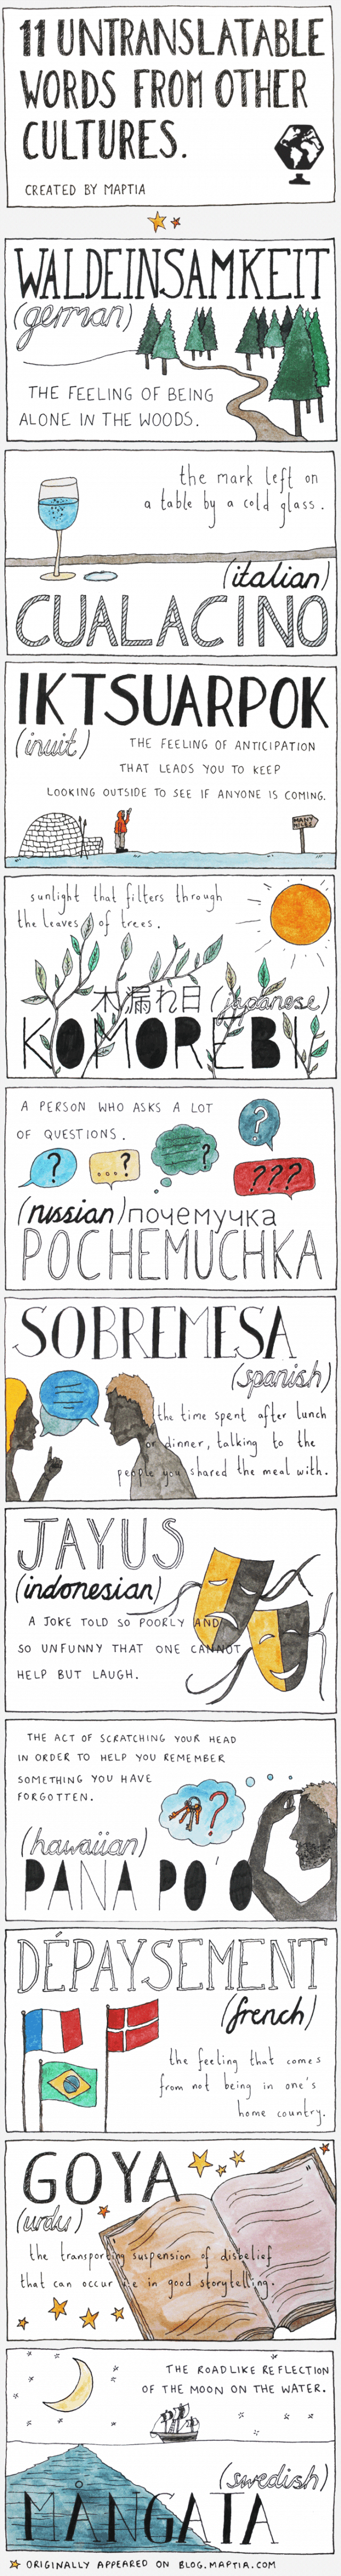 11 Untranslatable Words from Other Cultures 3